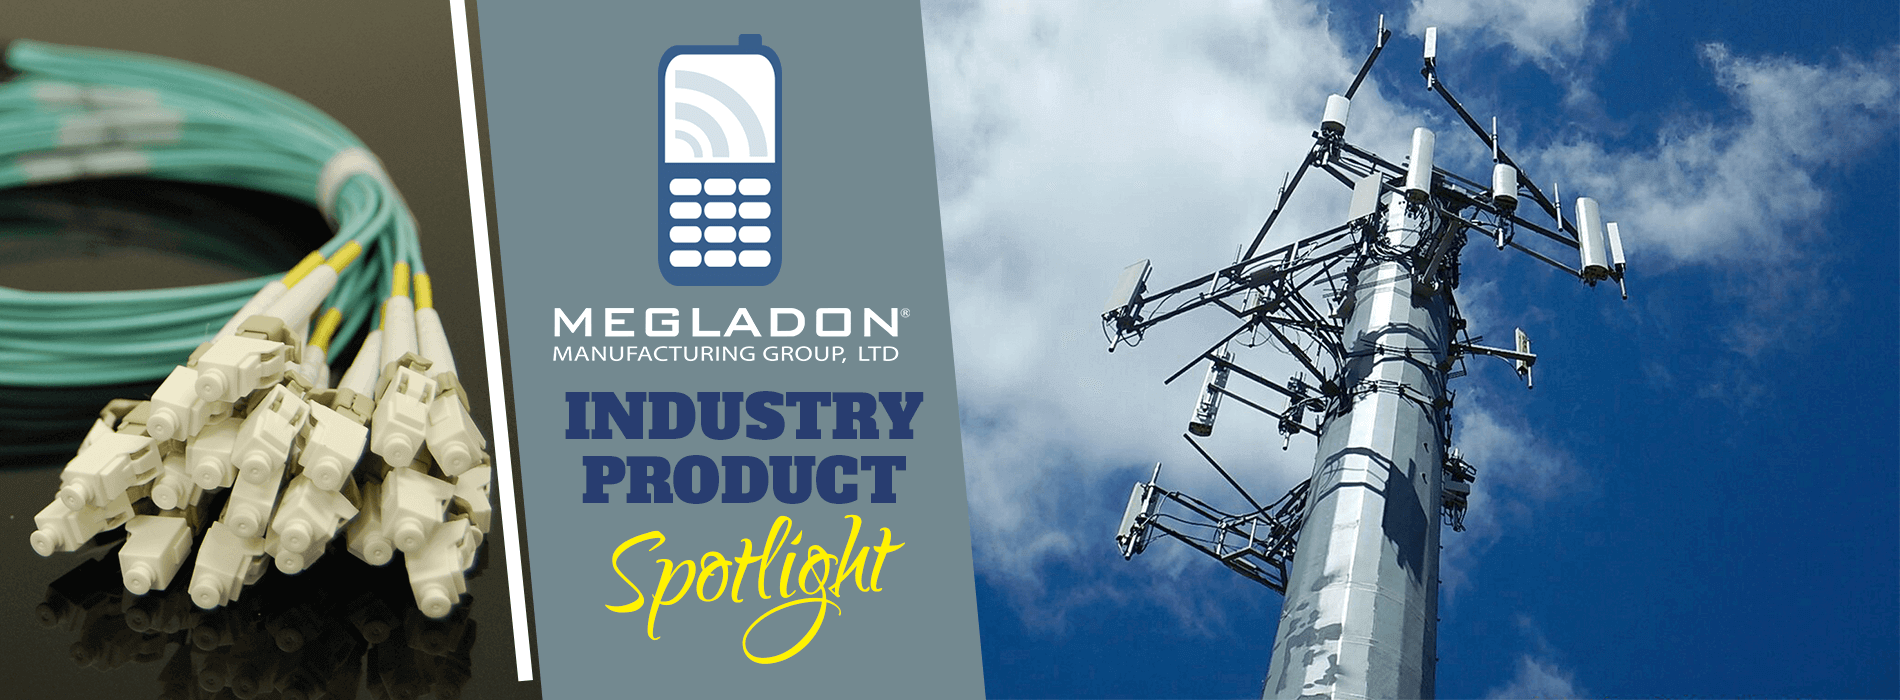 Industry Product Spotlight - Telecommunications Products